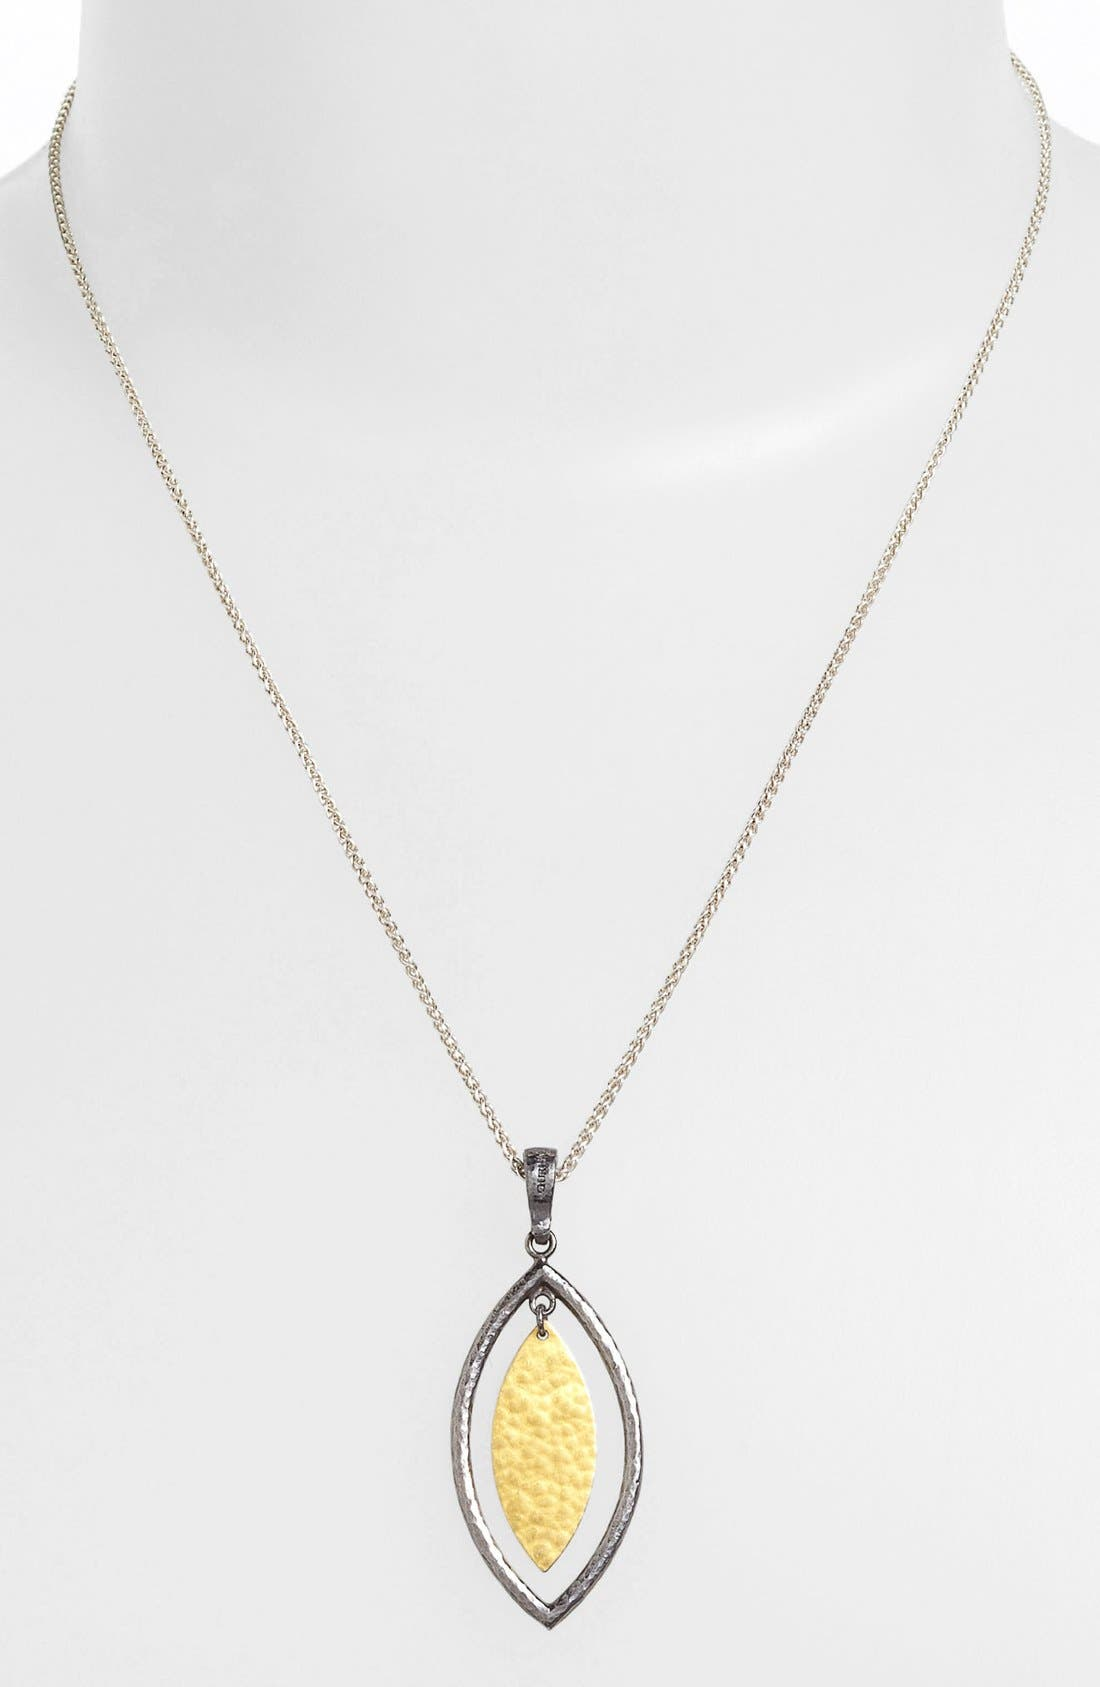 Main Image - Gurhan 'Willow' Blackened Silver & Gold Pendant Necklace